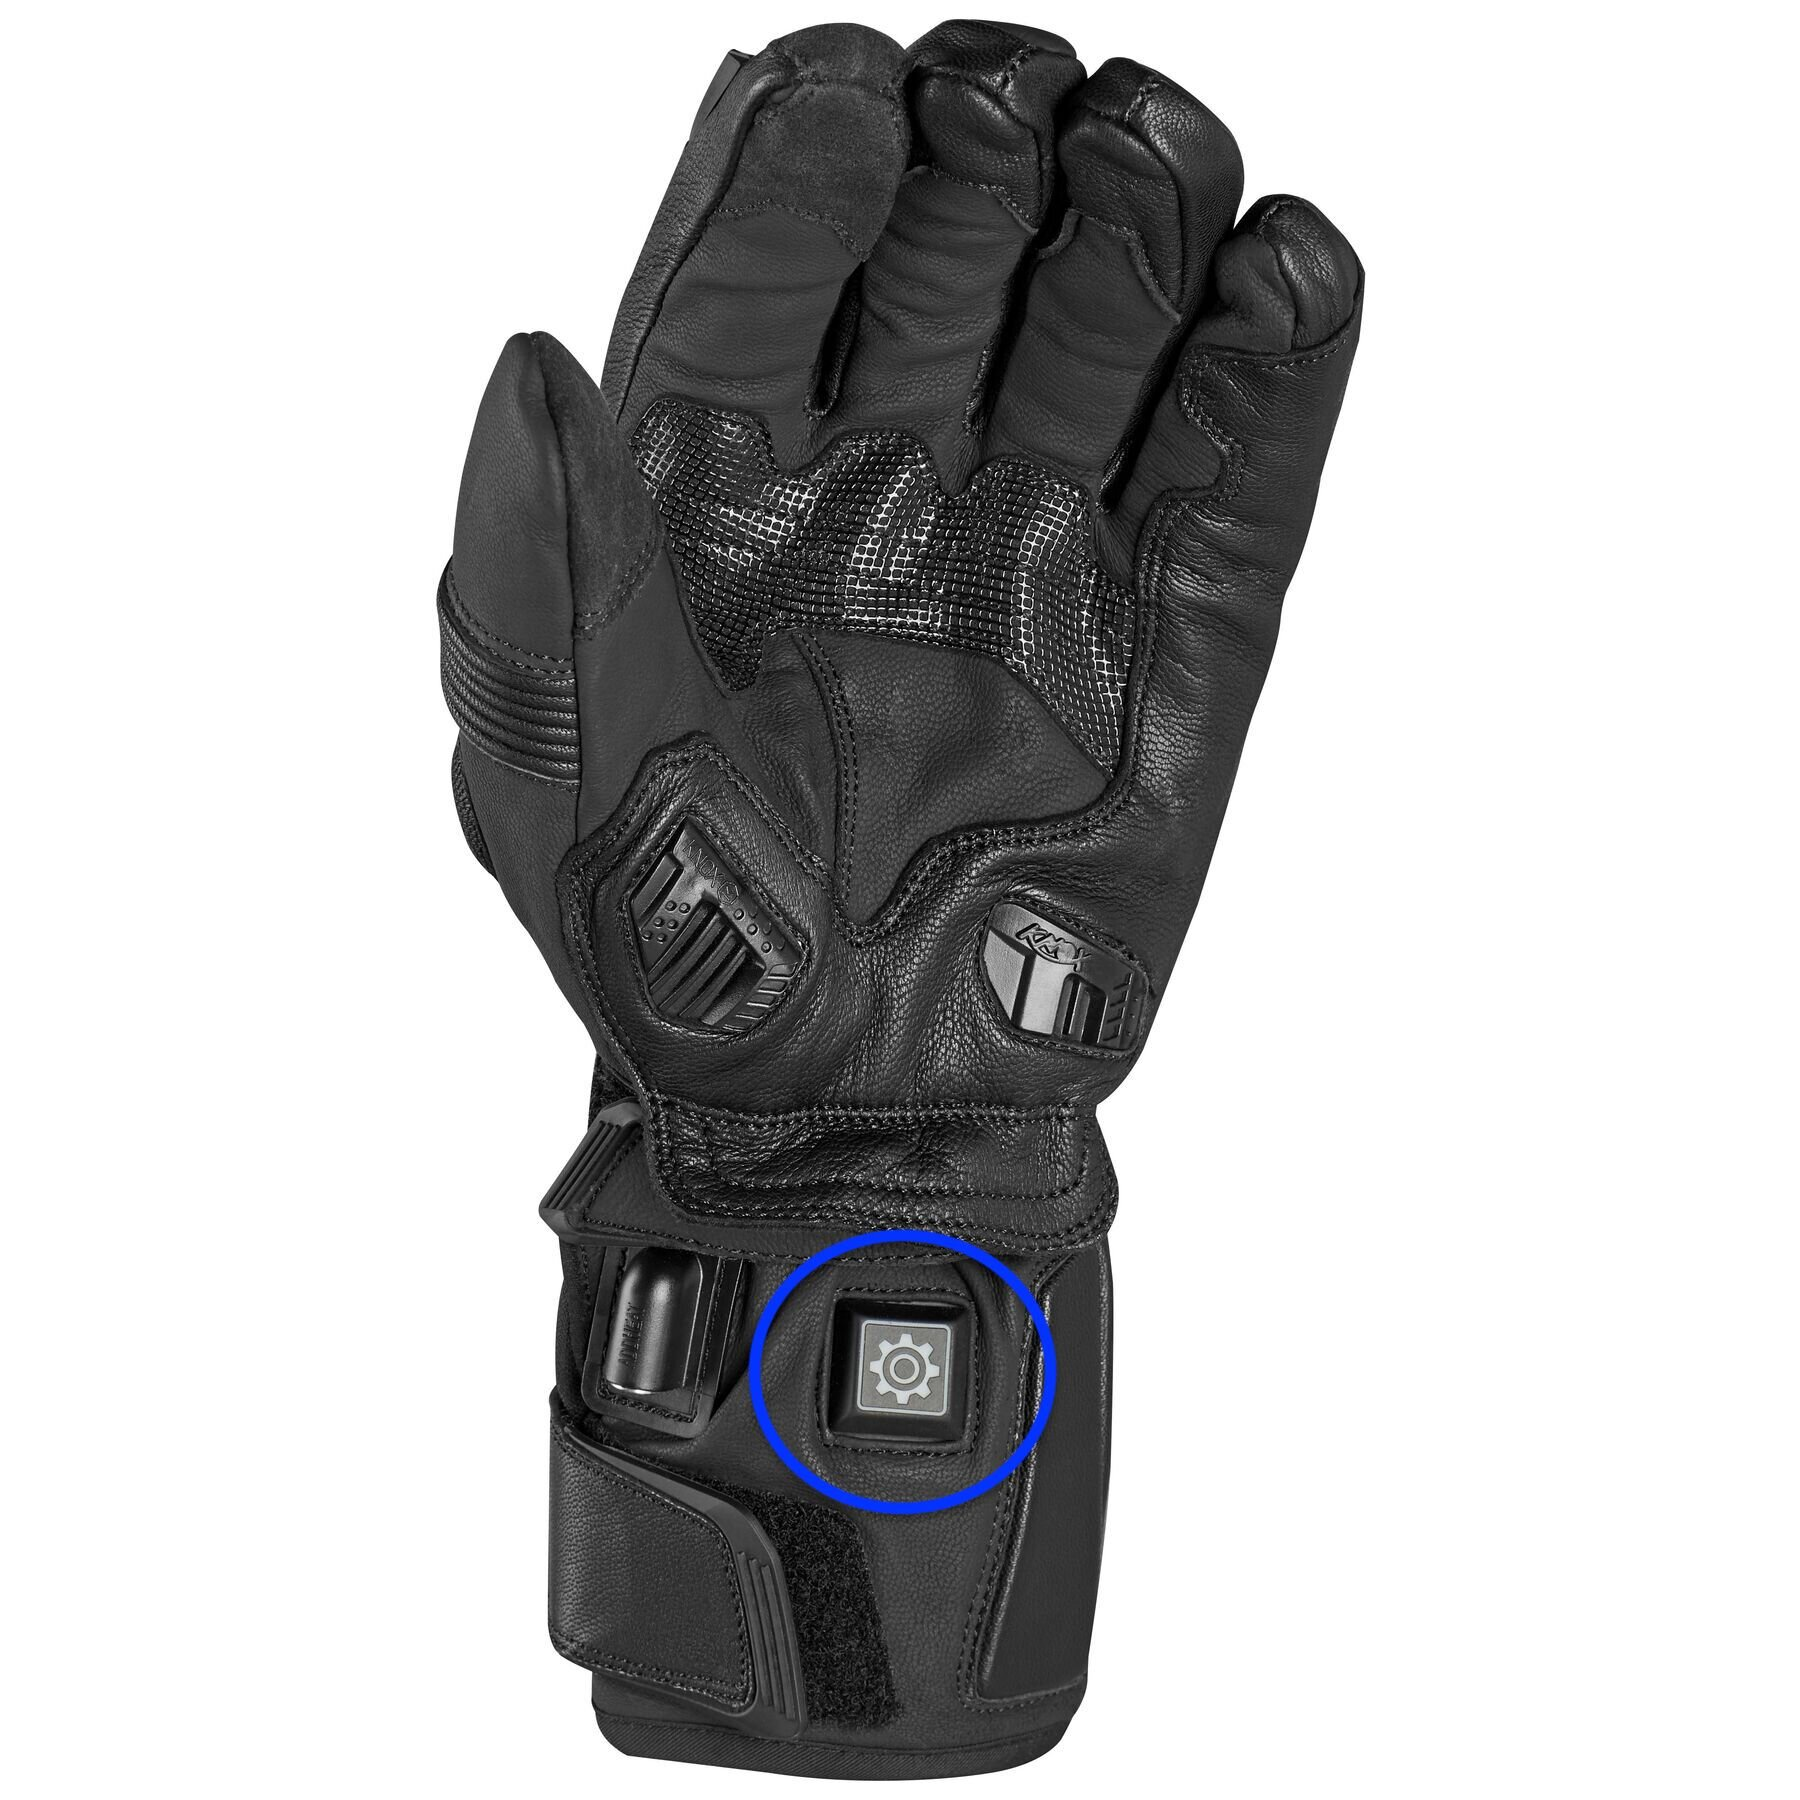 firstgear_outrider_heated_gloves_2019_palms.jpg